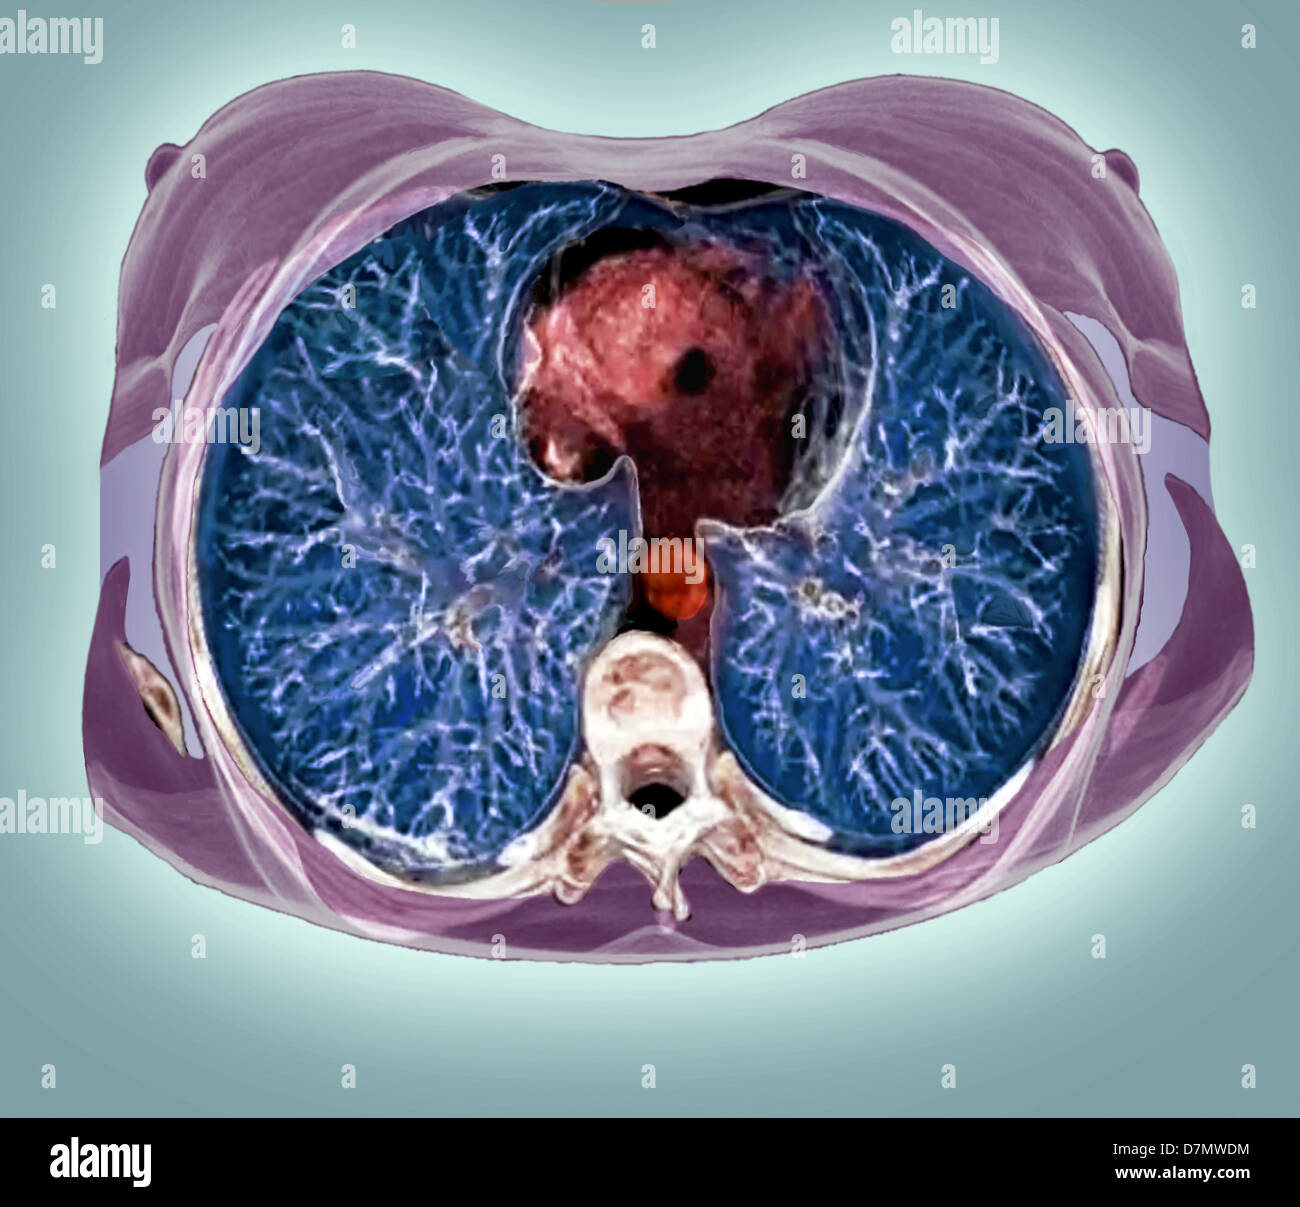 Chest Ct Scan Stockfotos & Chest Ct Scan Bilder - Alamy